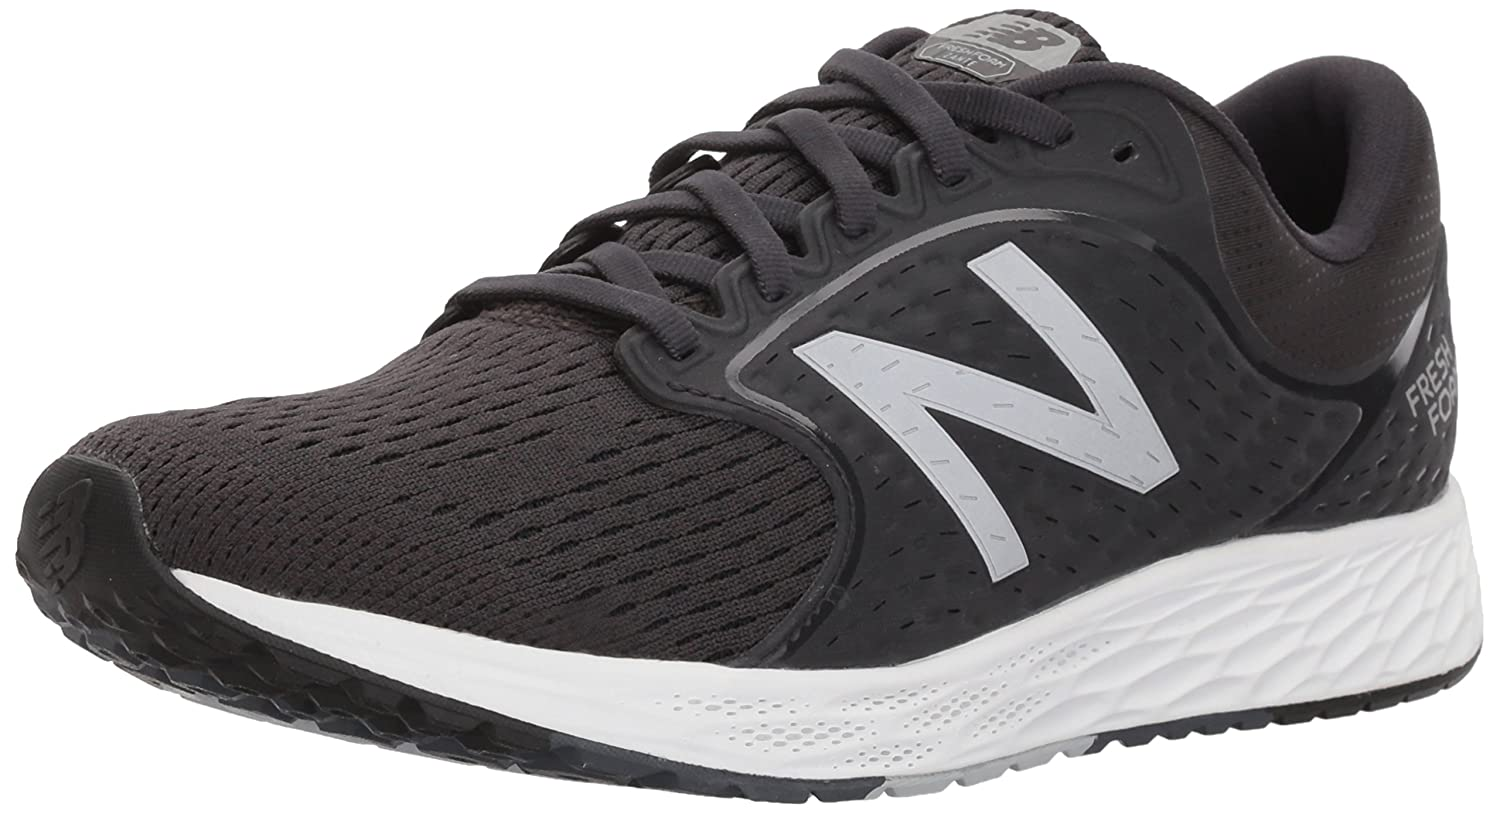 New Balance Women's Zante V4 Fresh Foam Running Shoe B06XSDSFKG 9 D US|Black